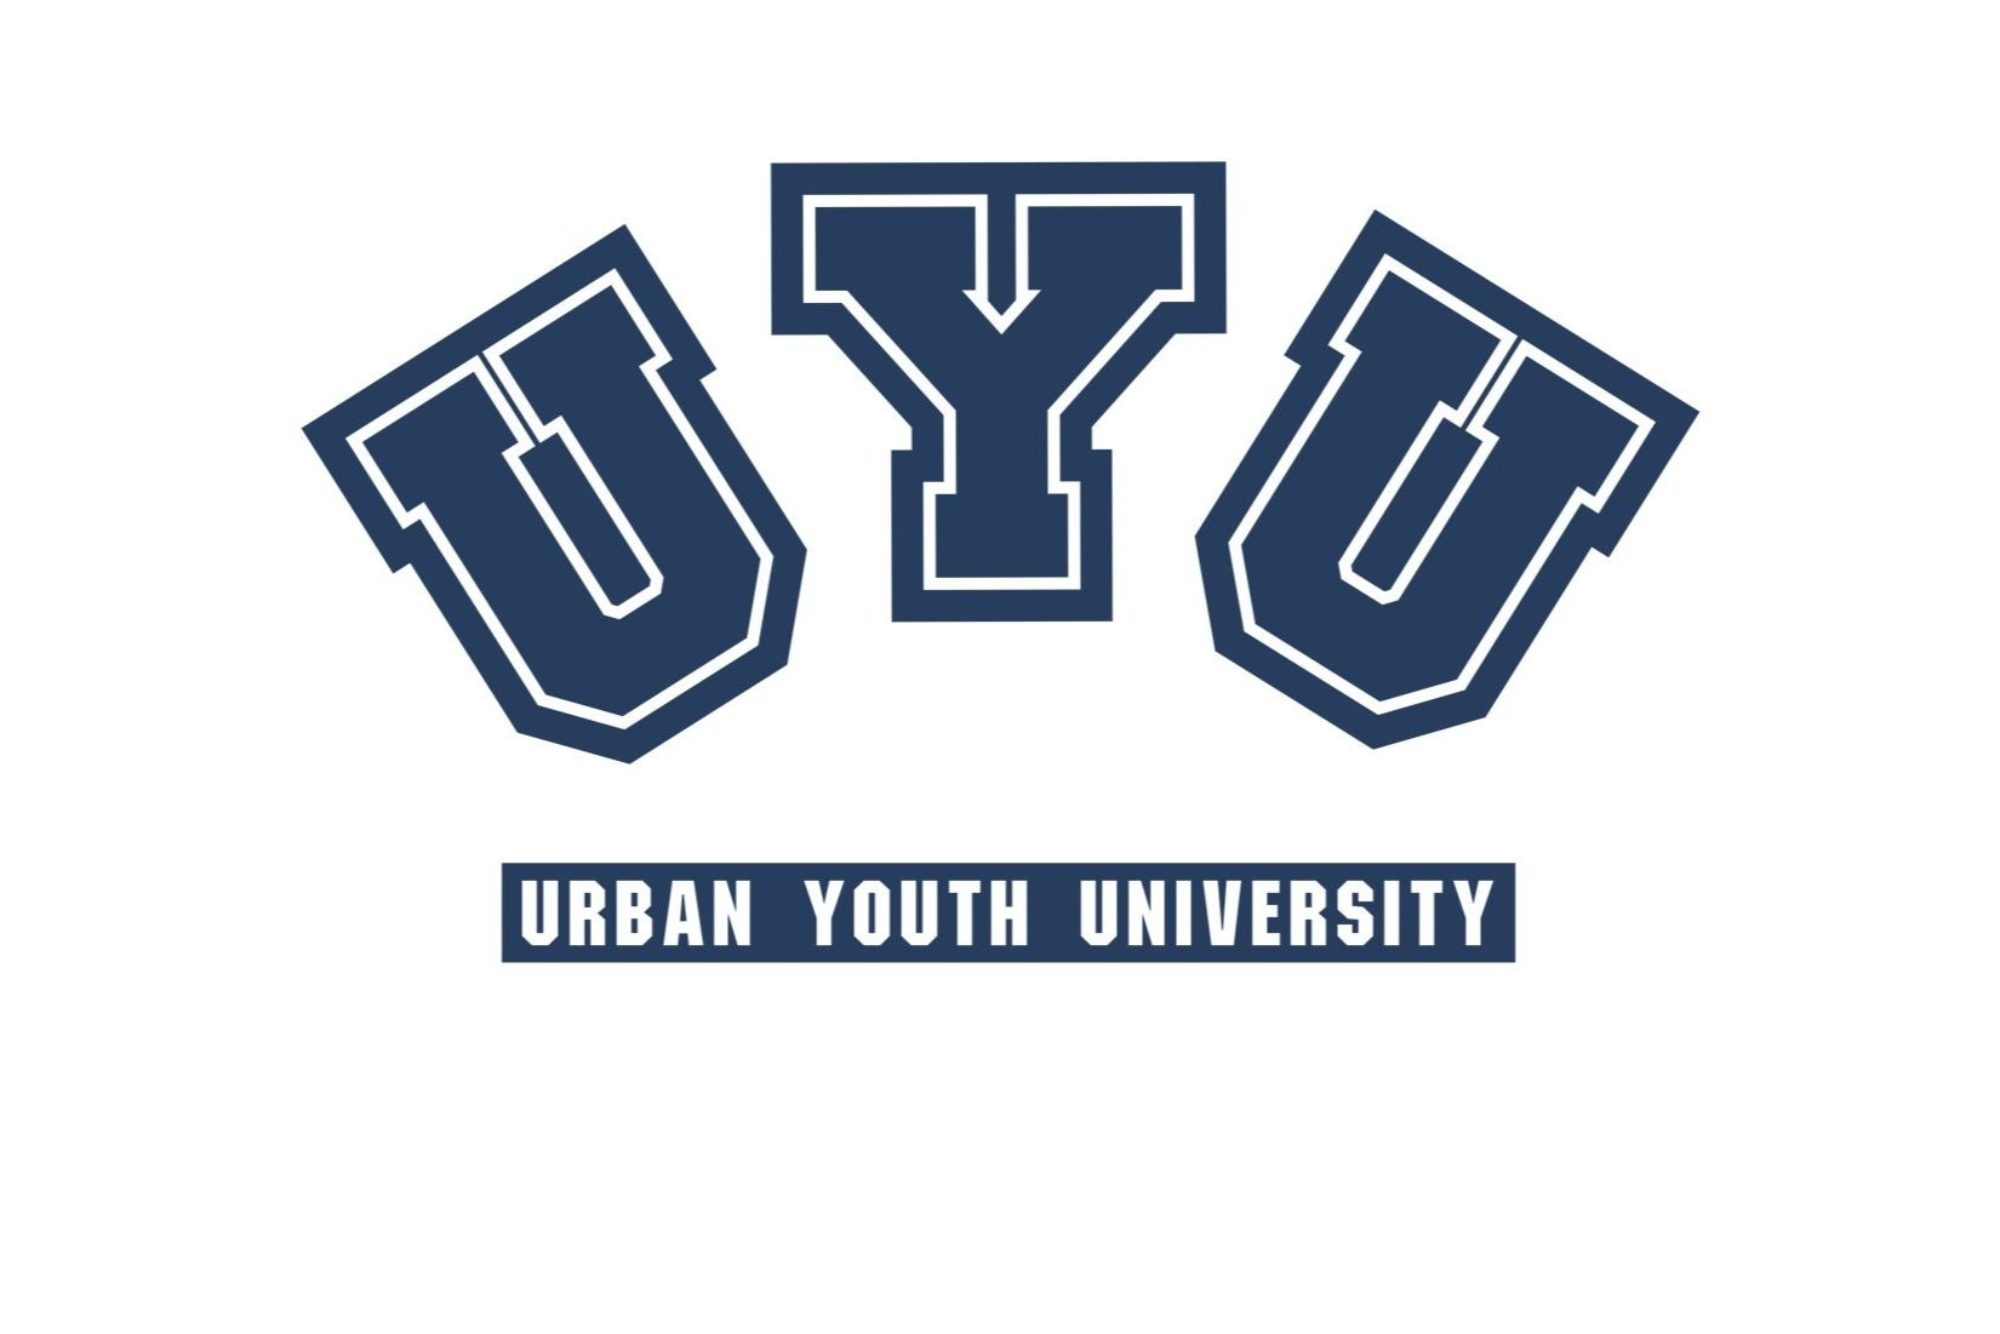 SERVING URBAN YOUTH THROUGH THEIR TRANSITIONS IN EDUCATION